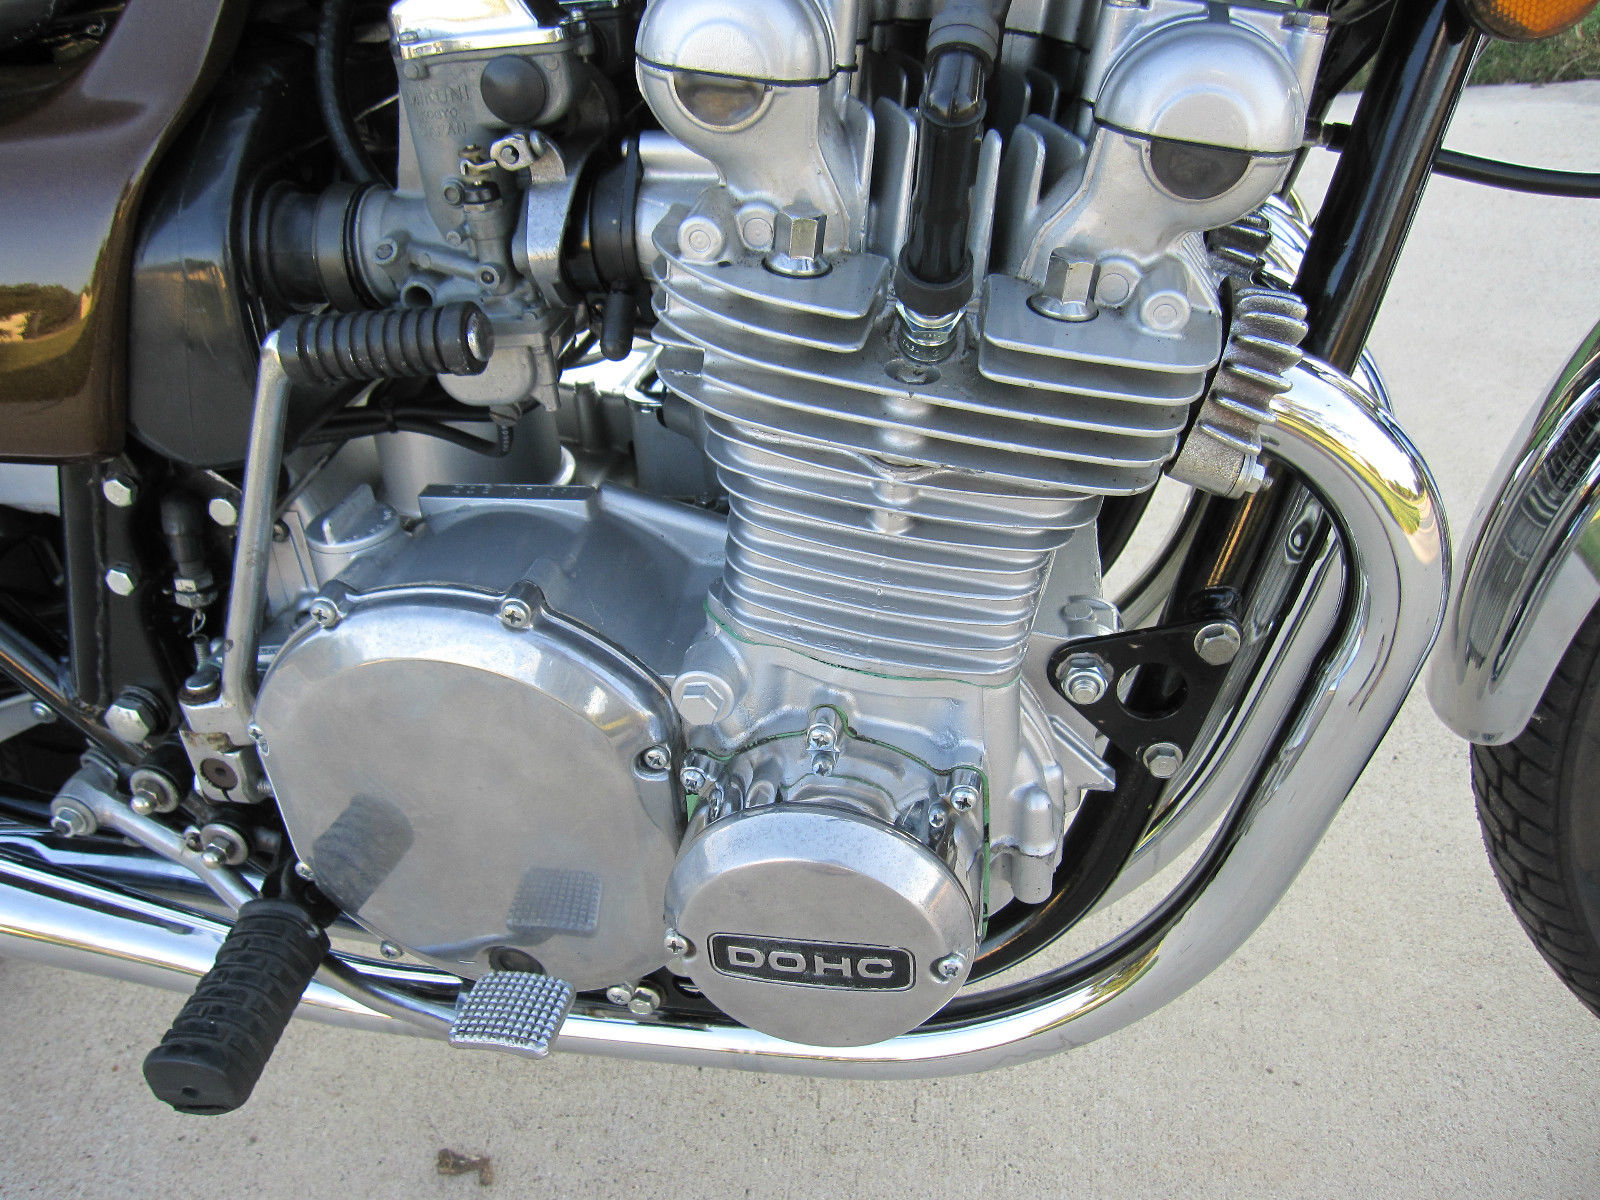 Kawasaki KZ900 - 1976 - Motor and Transmission, Clutch Cover, Cylinder and Head.